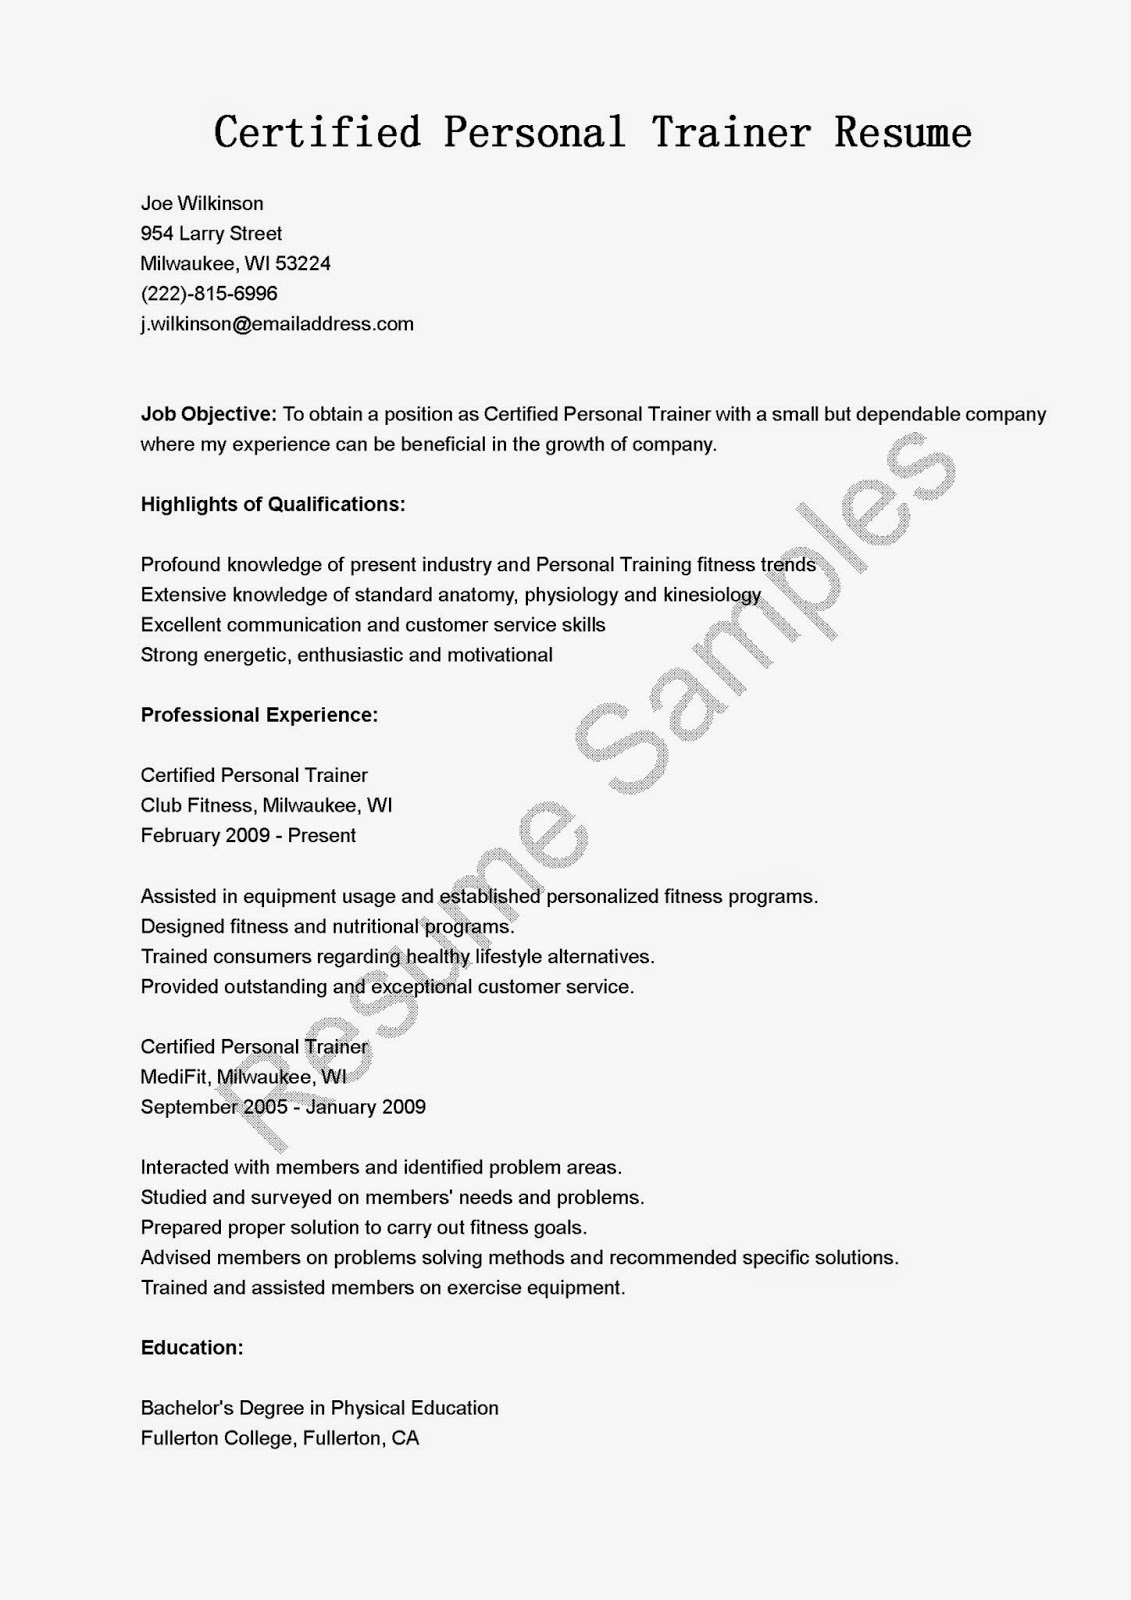 Personal Training Resume Sample ] - personal trainer resume ...